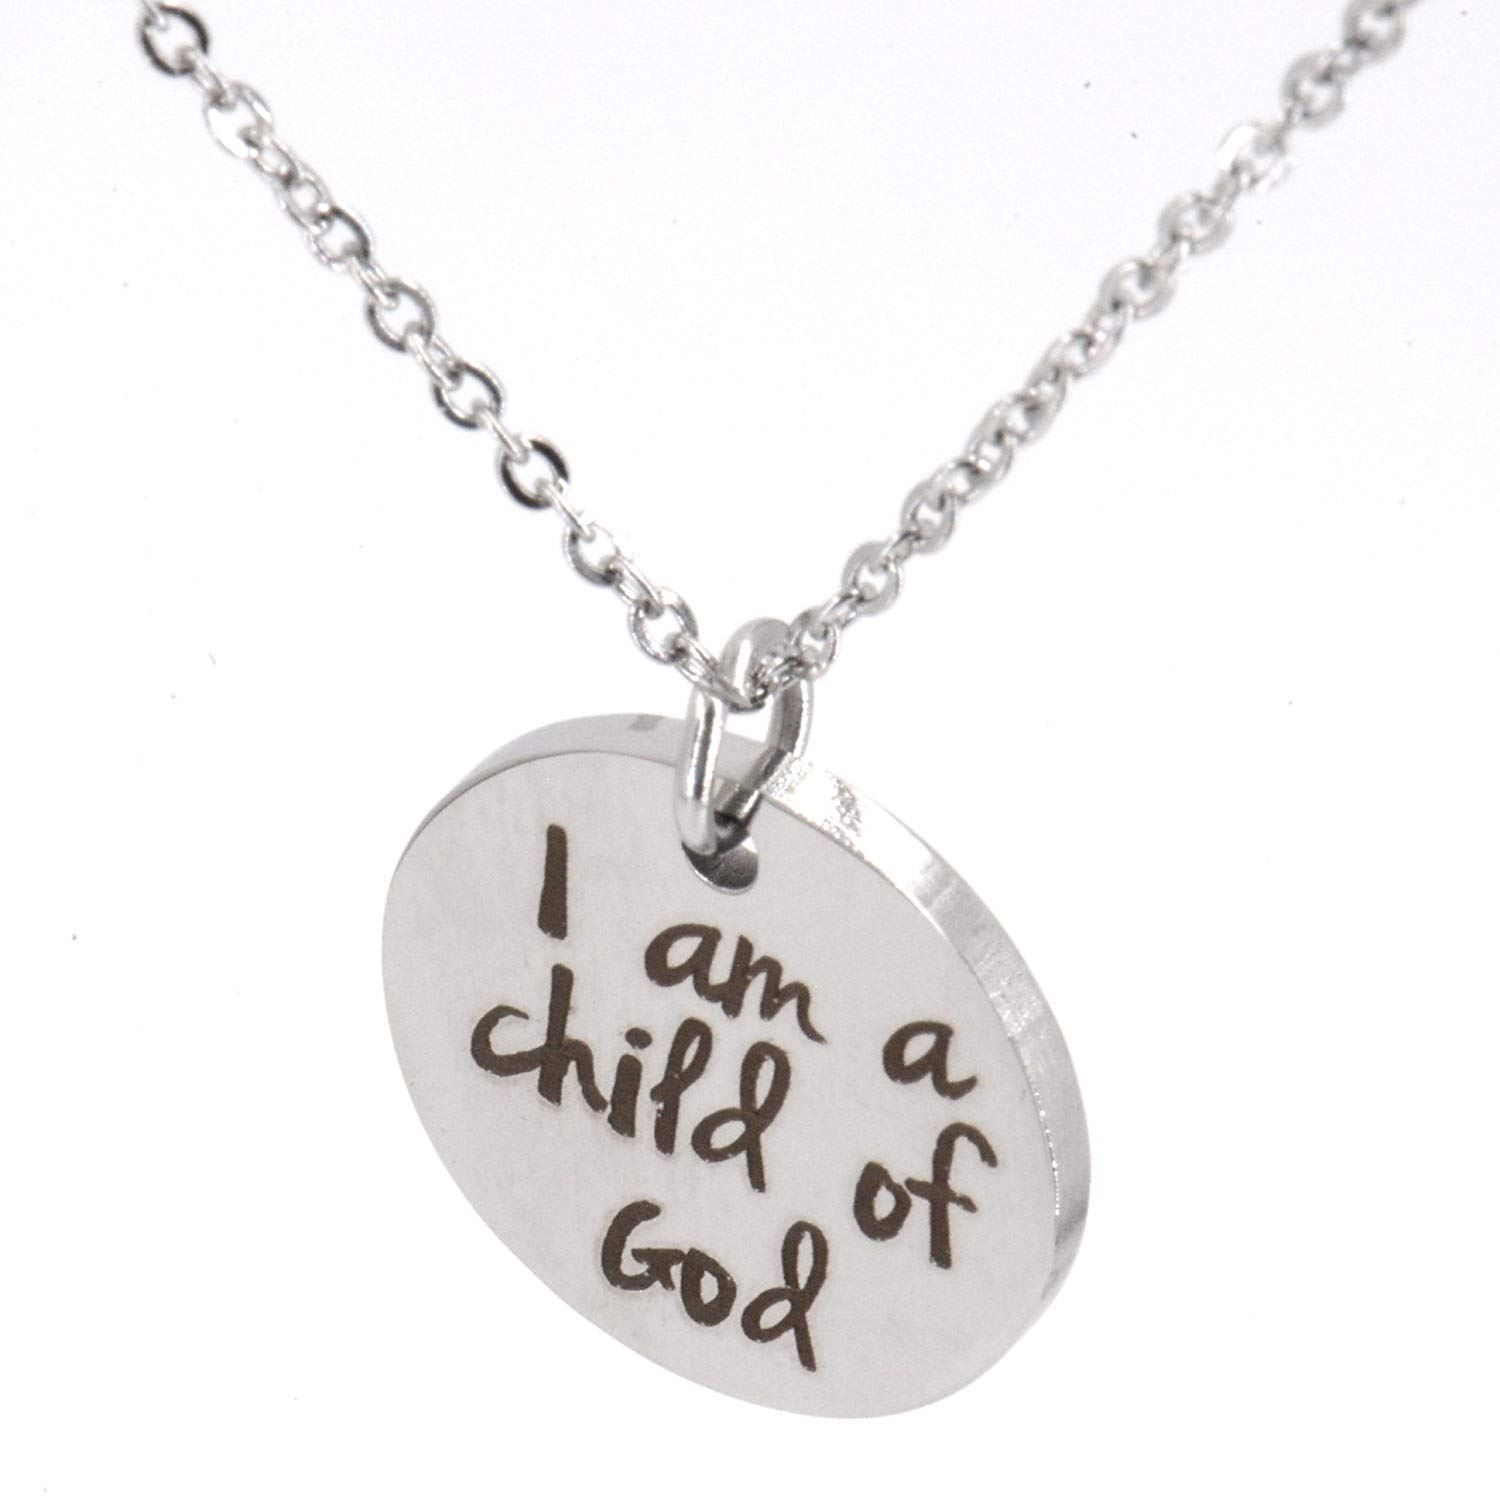 Christian Gifts for Girls, Christening gifts for girls, christian gifts for teenage girl